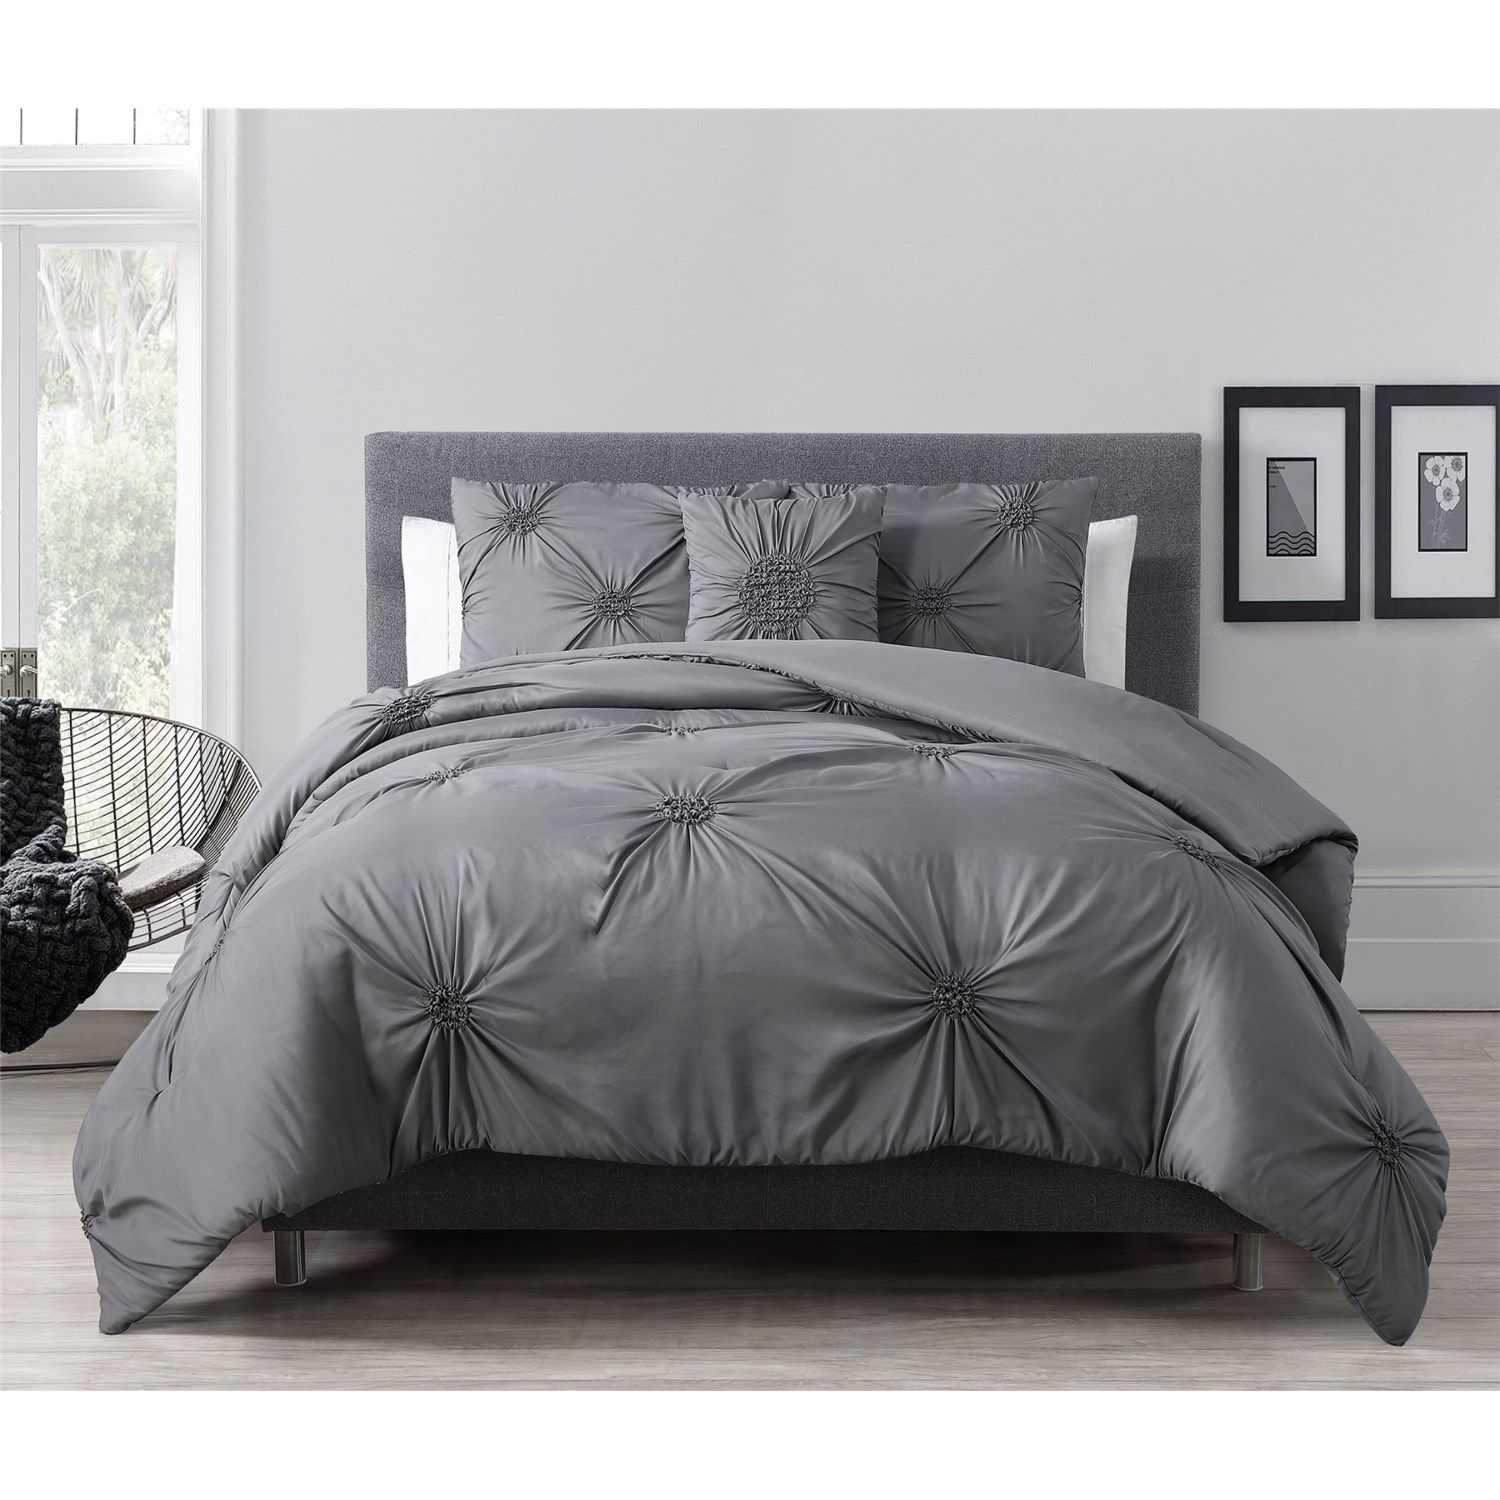 comforter bedspread pinterest powerful pin gray set queen piece blessed